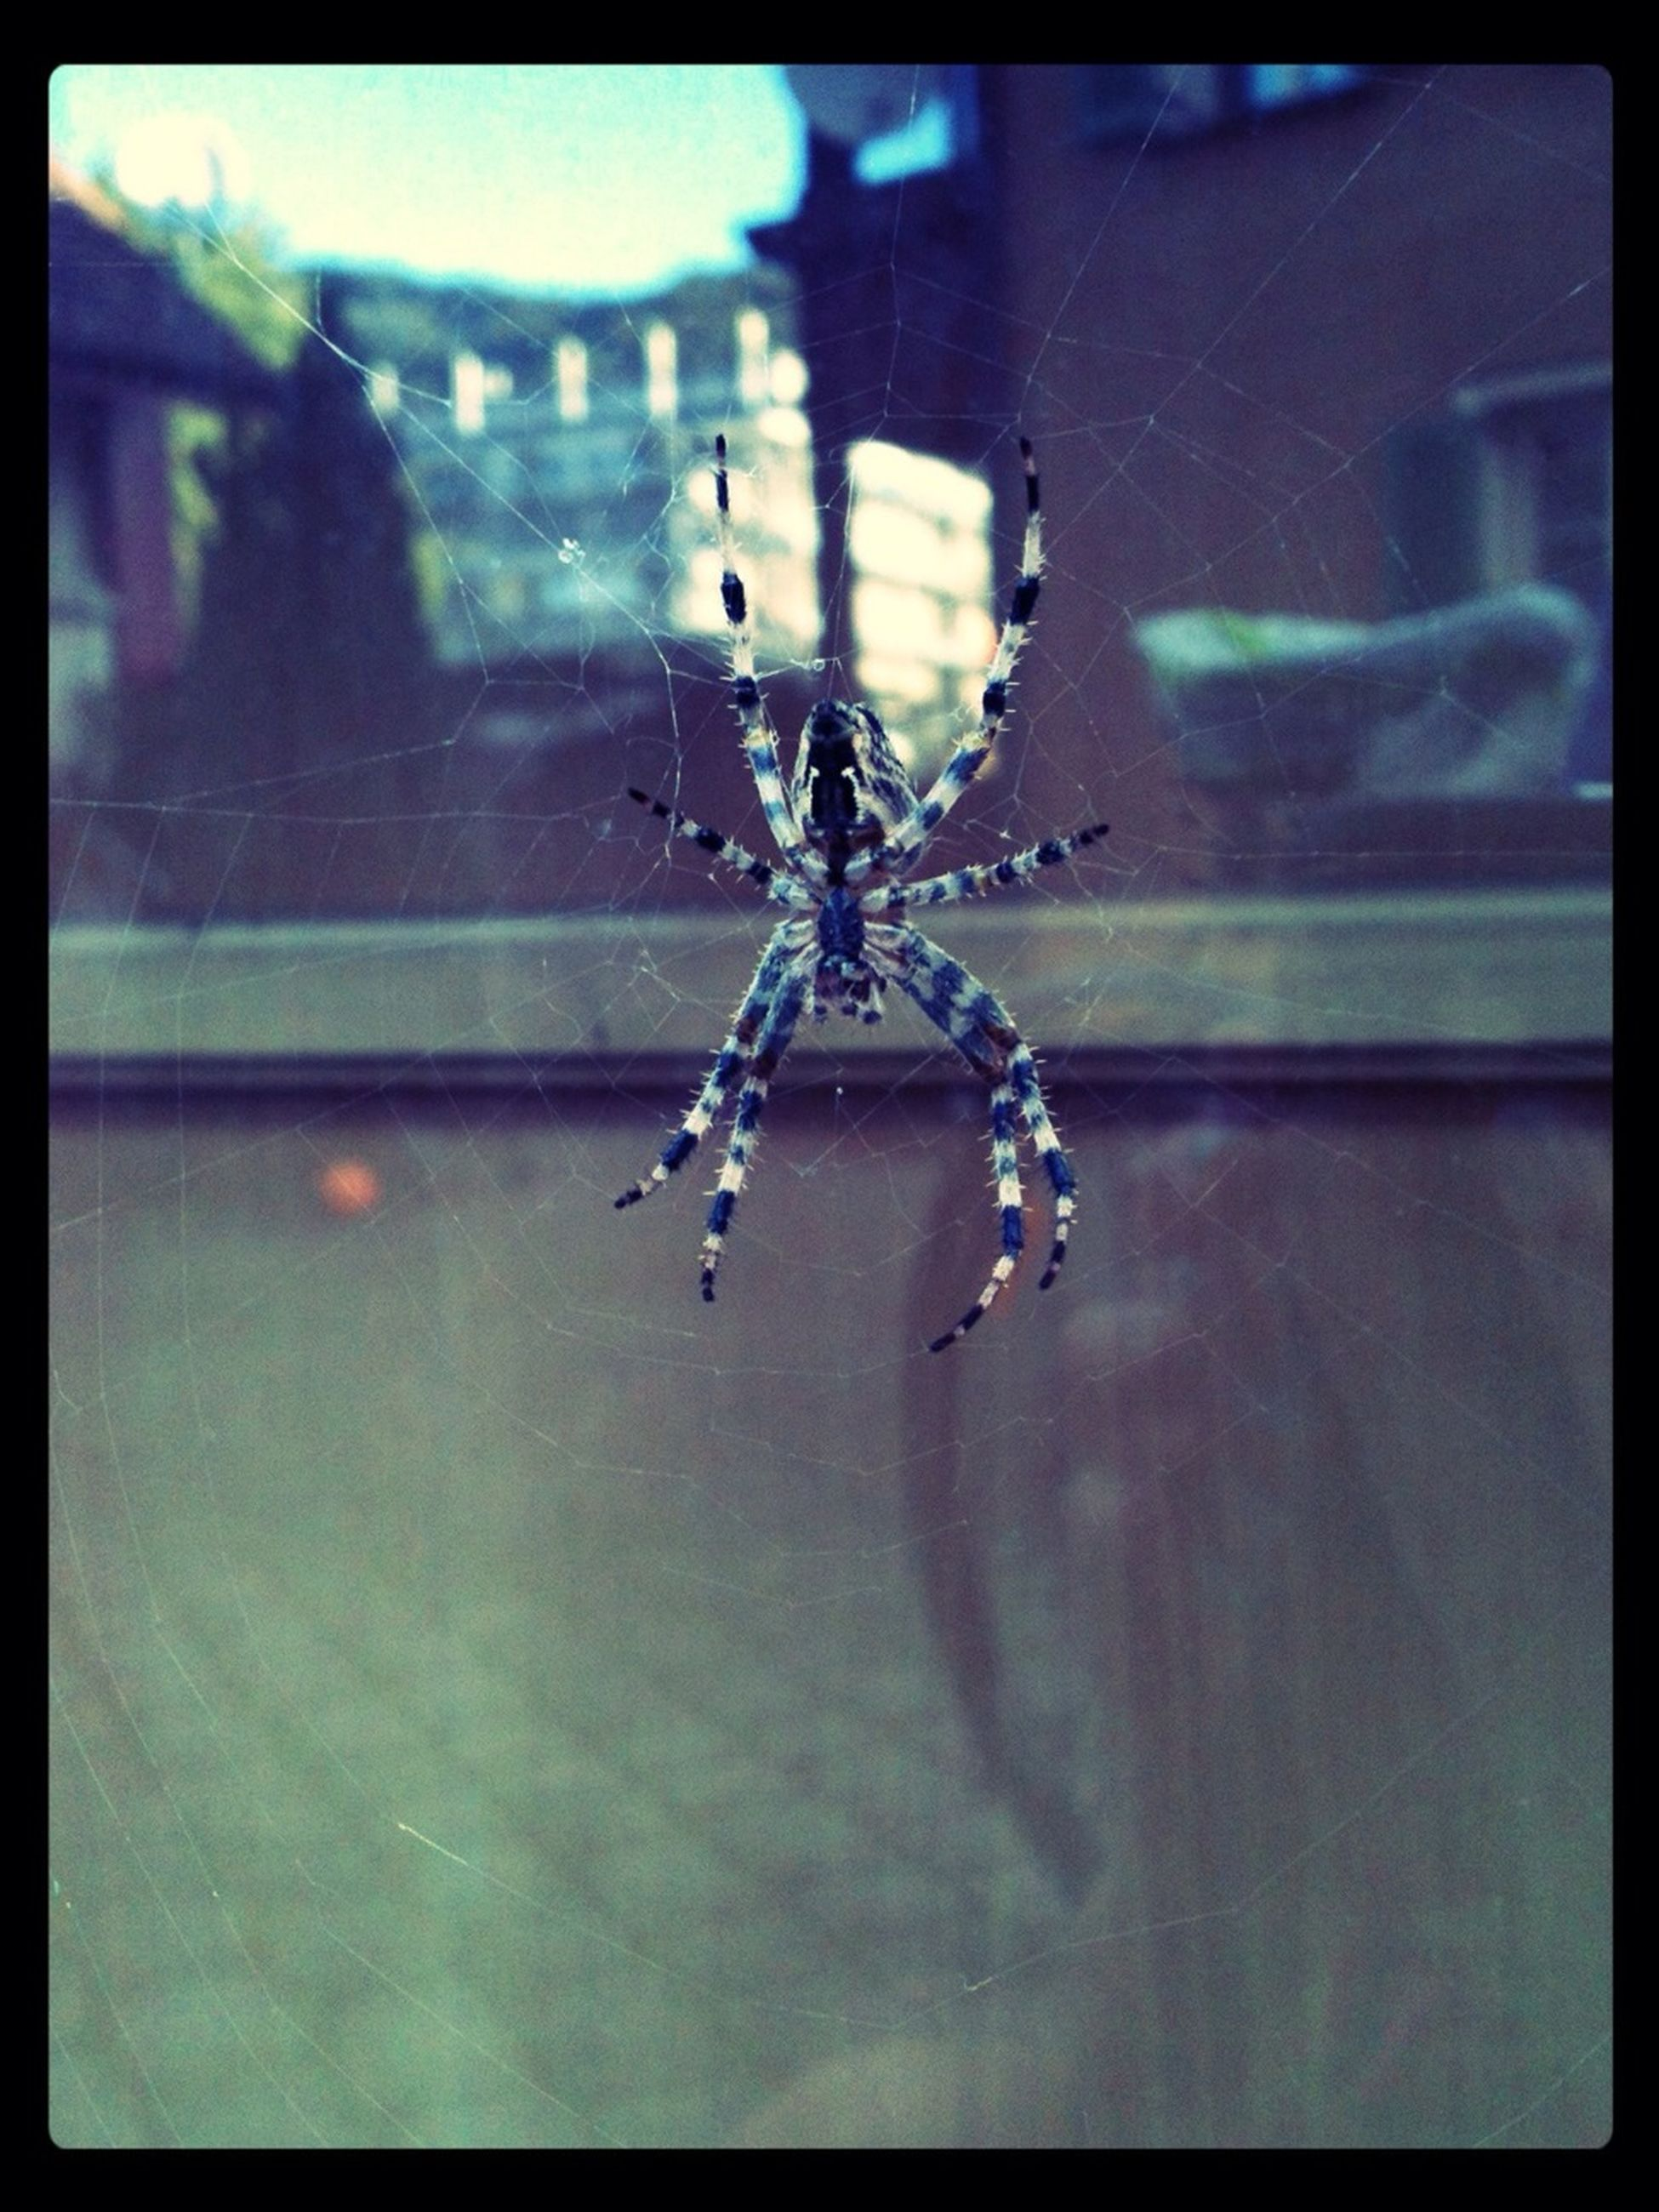 transfer print, water, auto post production filter, mode of transport, indoors, transportation, spider, animal themes, reflection, one animal, glass - material, illuminated, transparent, insect, animals in the wild, wildlife, waterfront, motion, window, no people